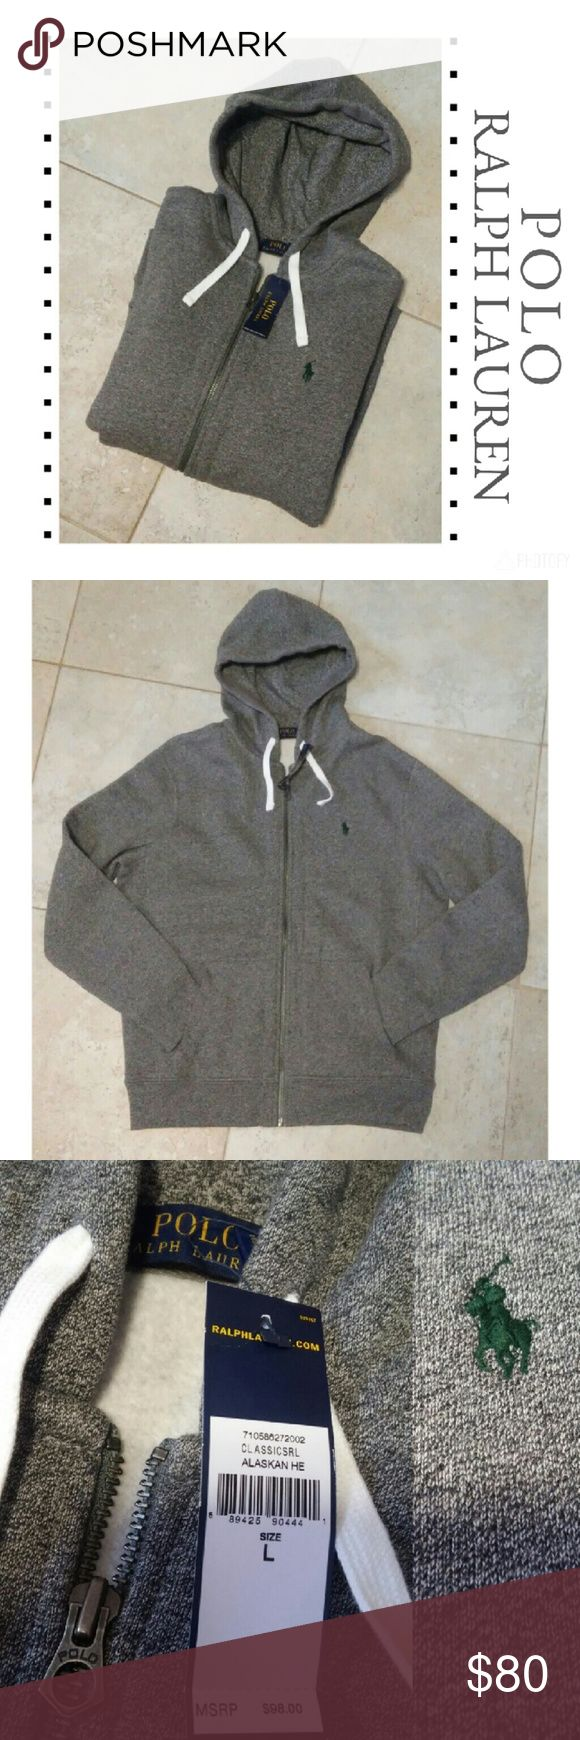 {Polo Ralph Lauren} Alaskan Heather grey zip up New with tags! Polo Ralph Lauren Alaskan Heather grey  Hunter green logo Full zip up with hood & drawstring Size large  MSRP $98 Polo by Ralph Lauren Shirts Sweatshirts & Hoodies